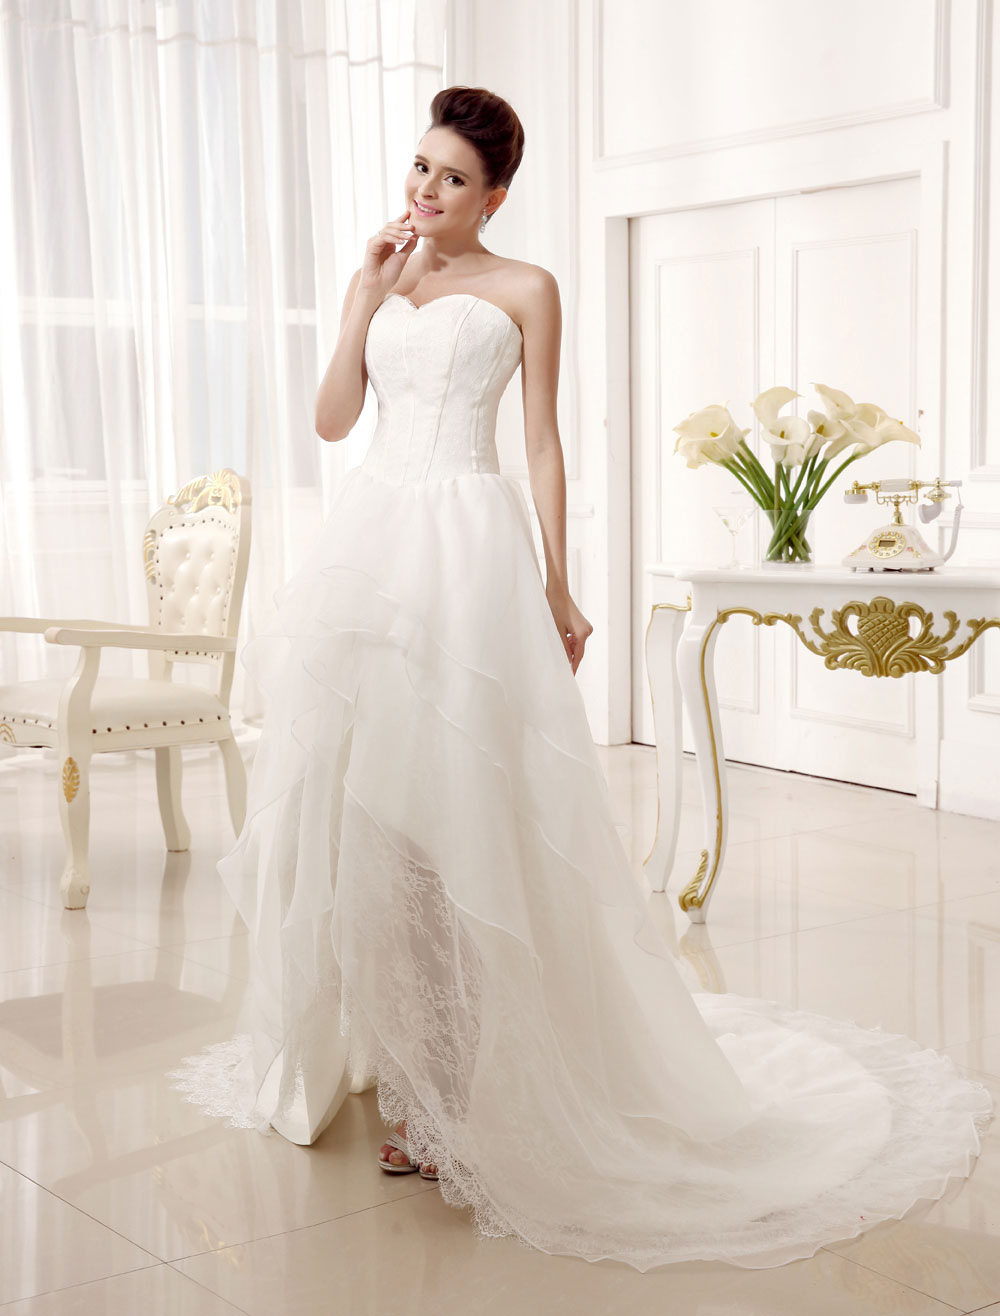 658bd38b5f4 ... Ivory A-line Sweetheart Neck Strapless Tiered Bridal Wedding Gown-No.3  ...